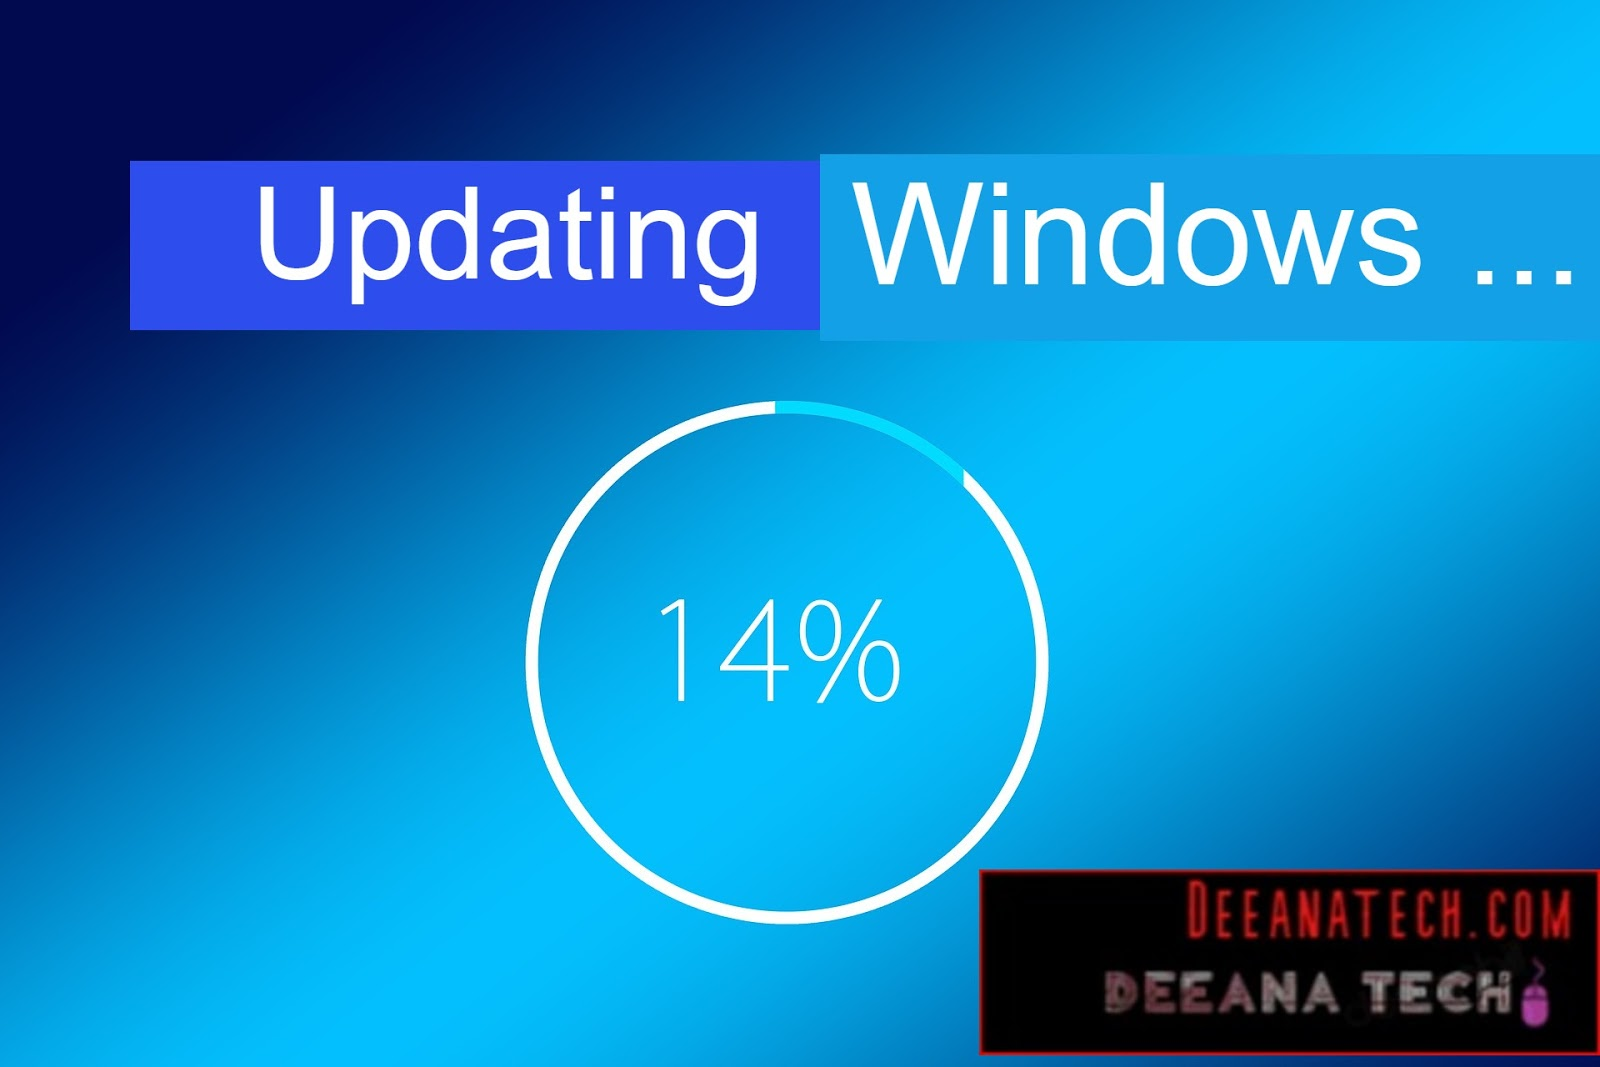 Windows updating _ Pc Hang Problems Solve, Common Computer Problems & Solutions- deeanatech.com